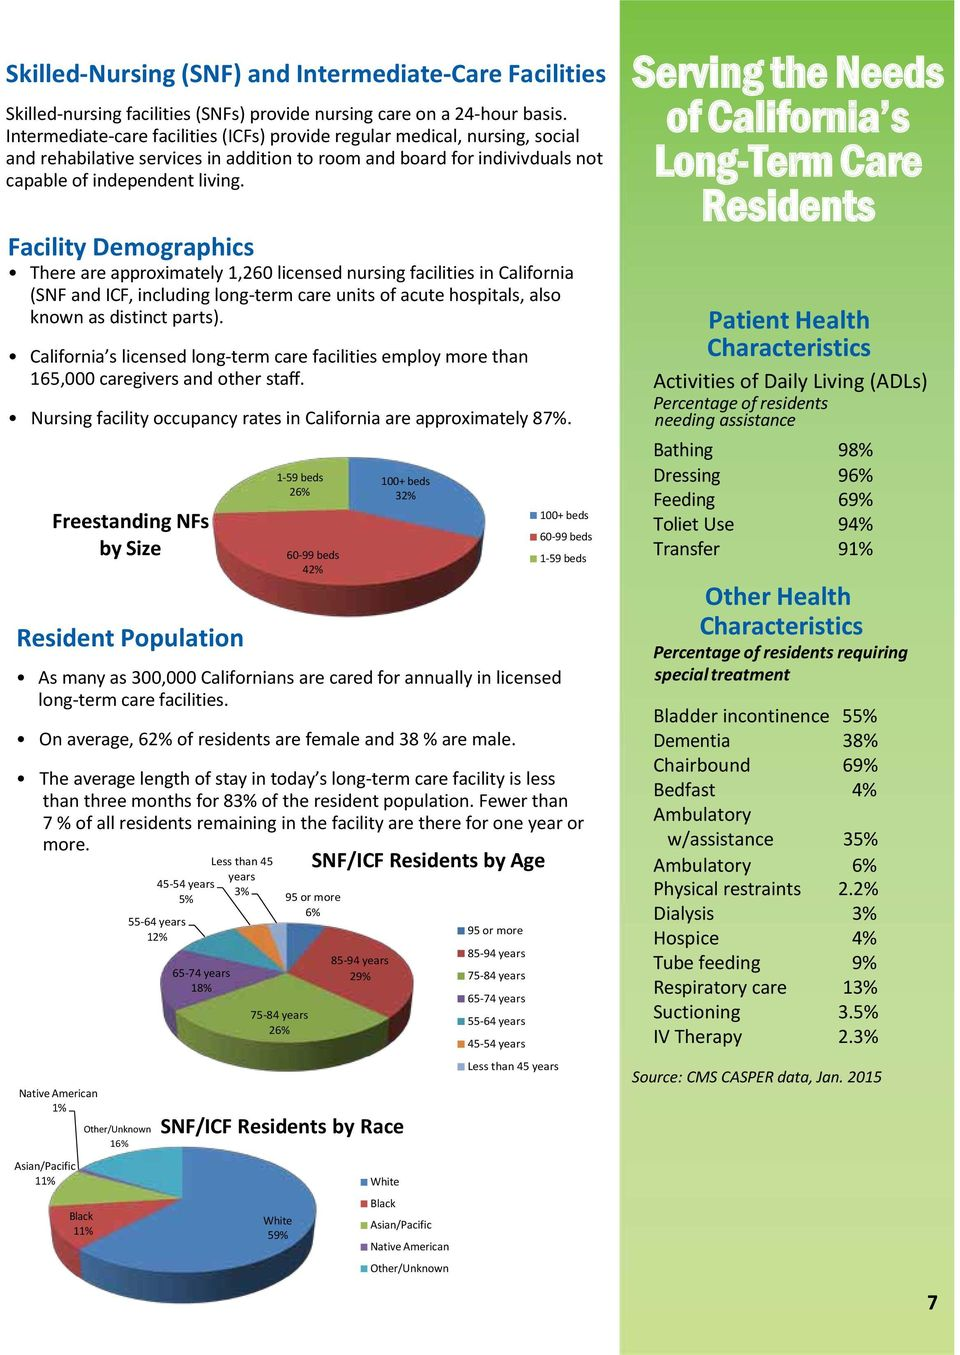 Facility Demographics There are approximately 1,260 licensed nursing facilities in California (SNF and ICF, including long-term care units of acute hospitals, also known as distinct parts).